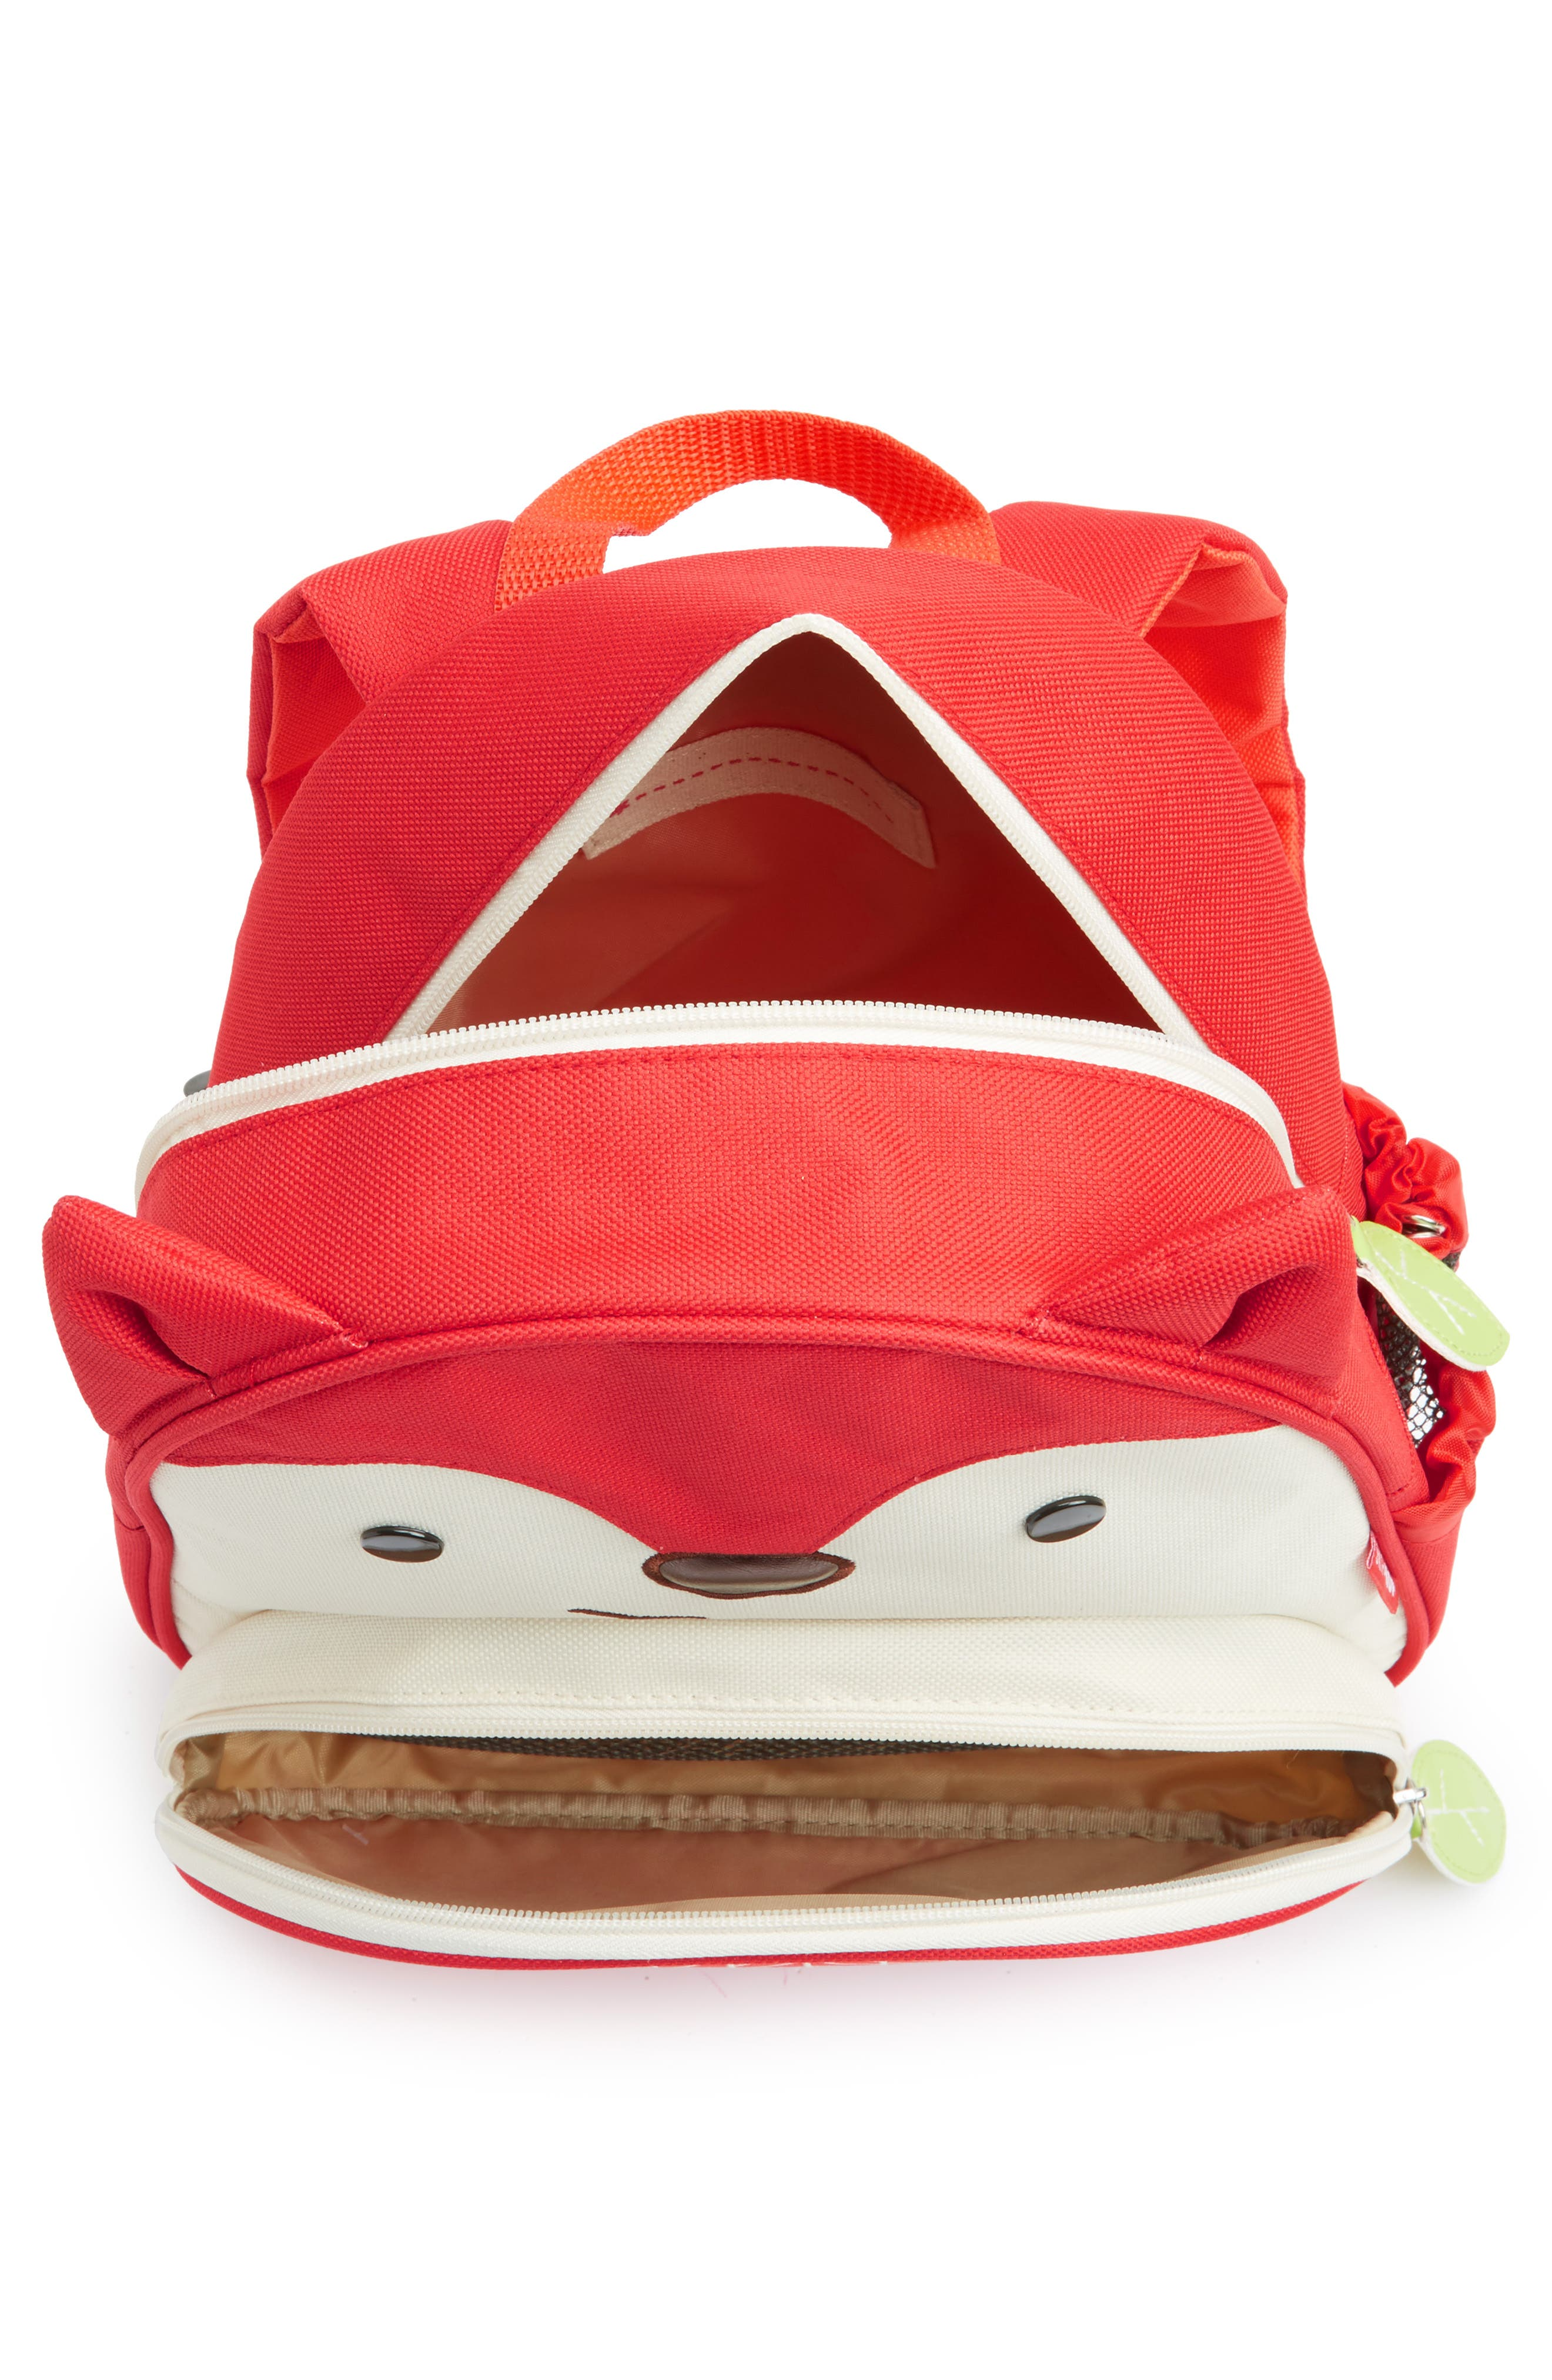 Zoo Pack Backpack,                             Alternate thumbnail 57, color,